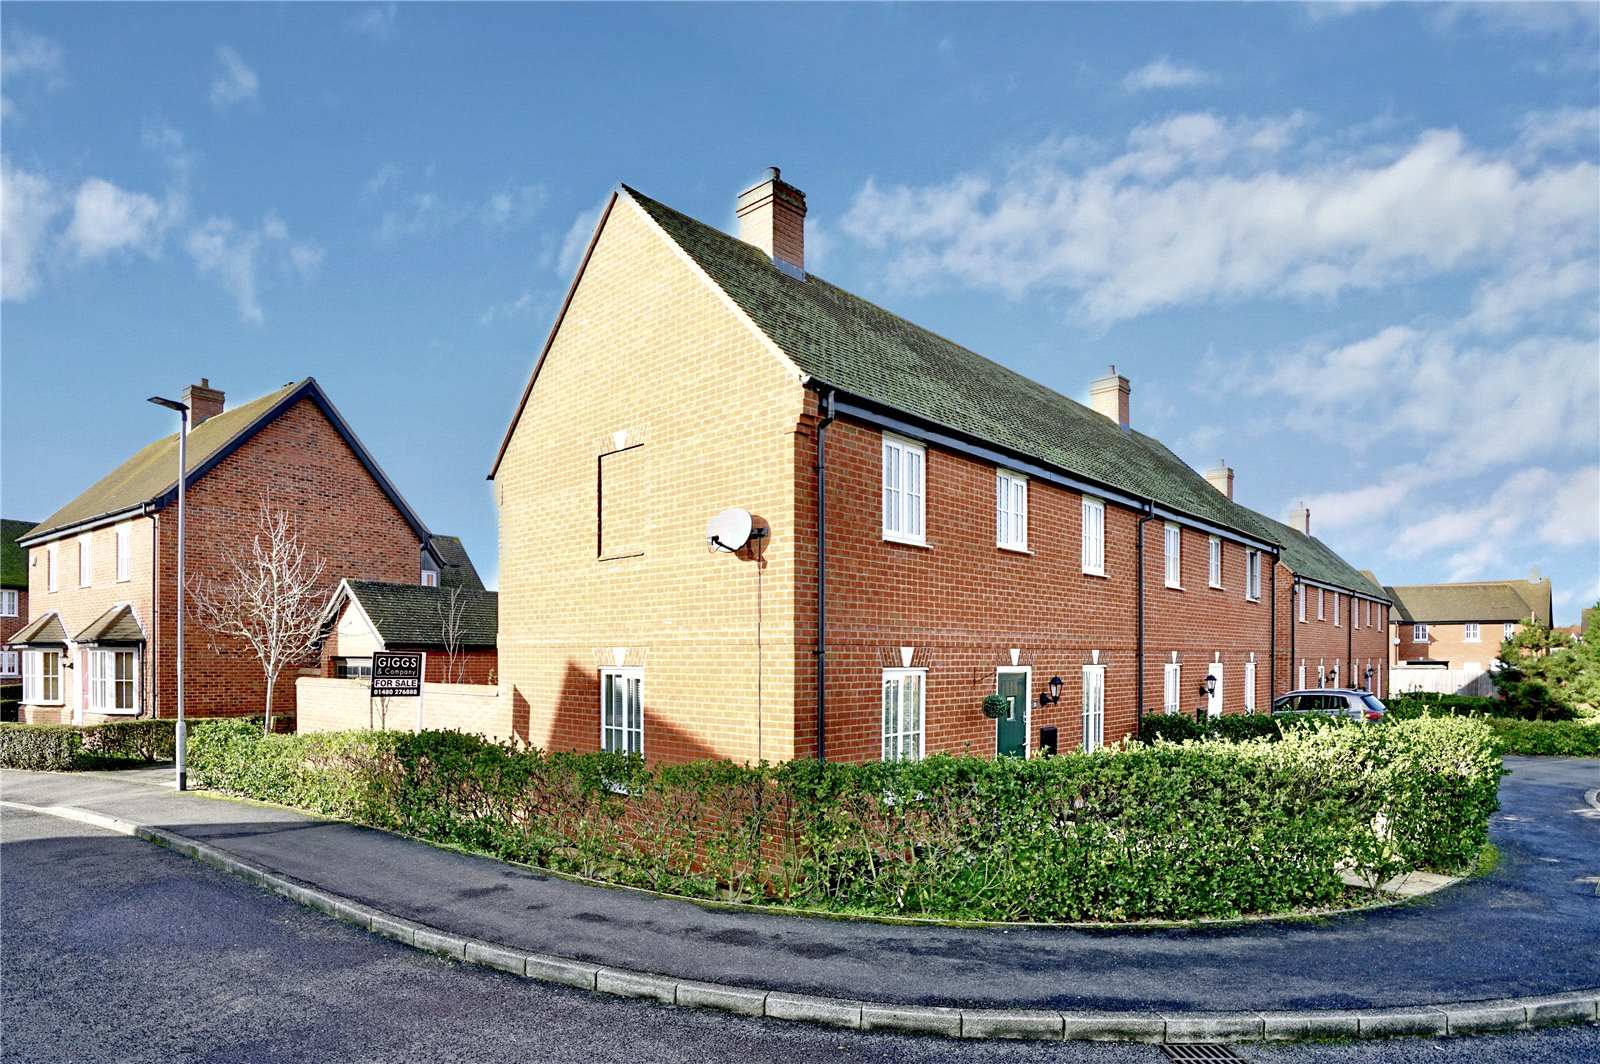 3 bed house for sale in Woodpecker Close, Great Barford  - Property Image 5